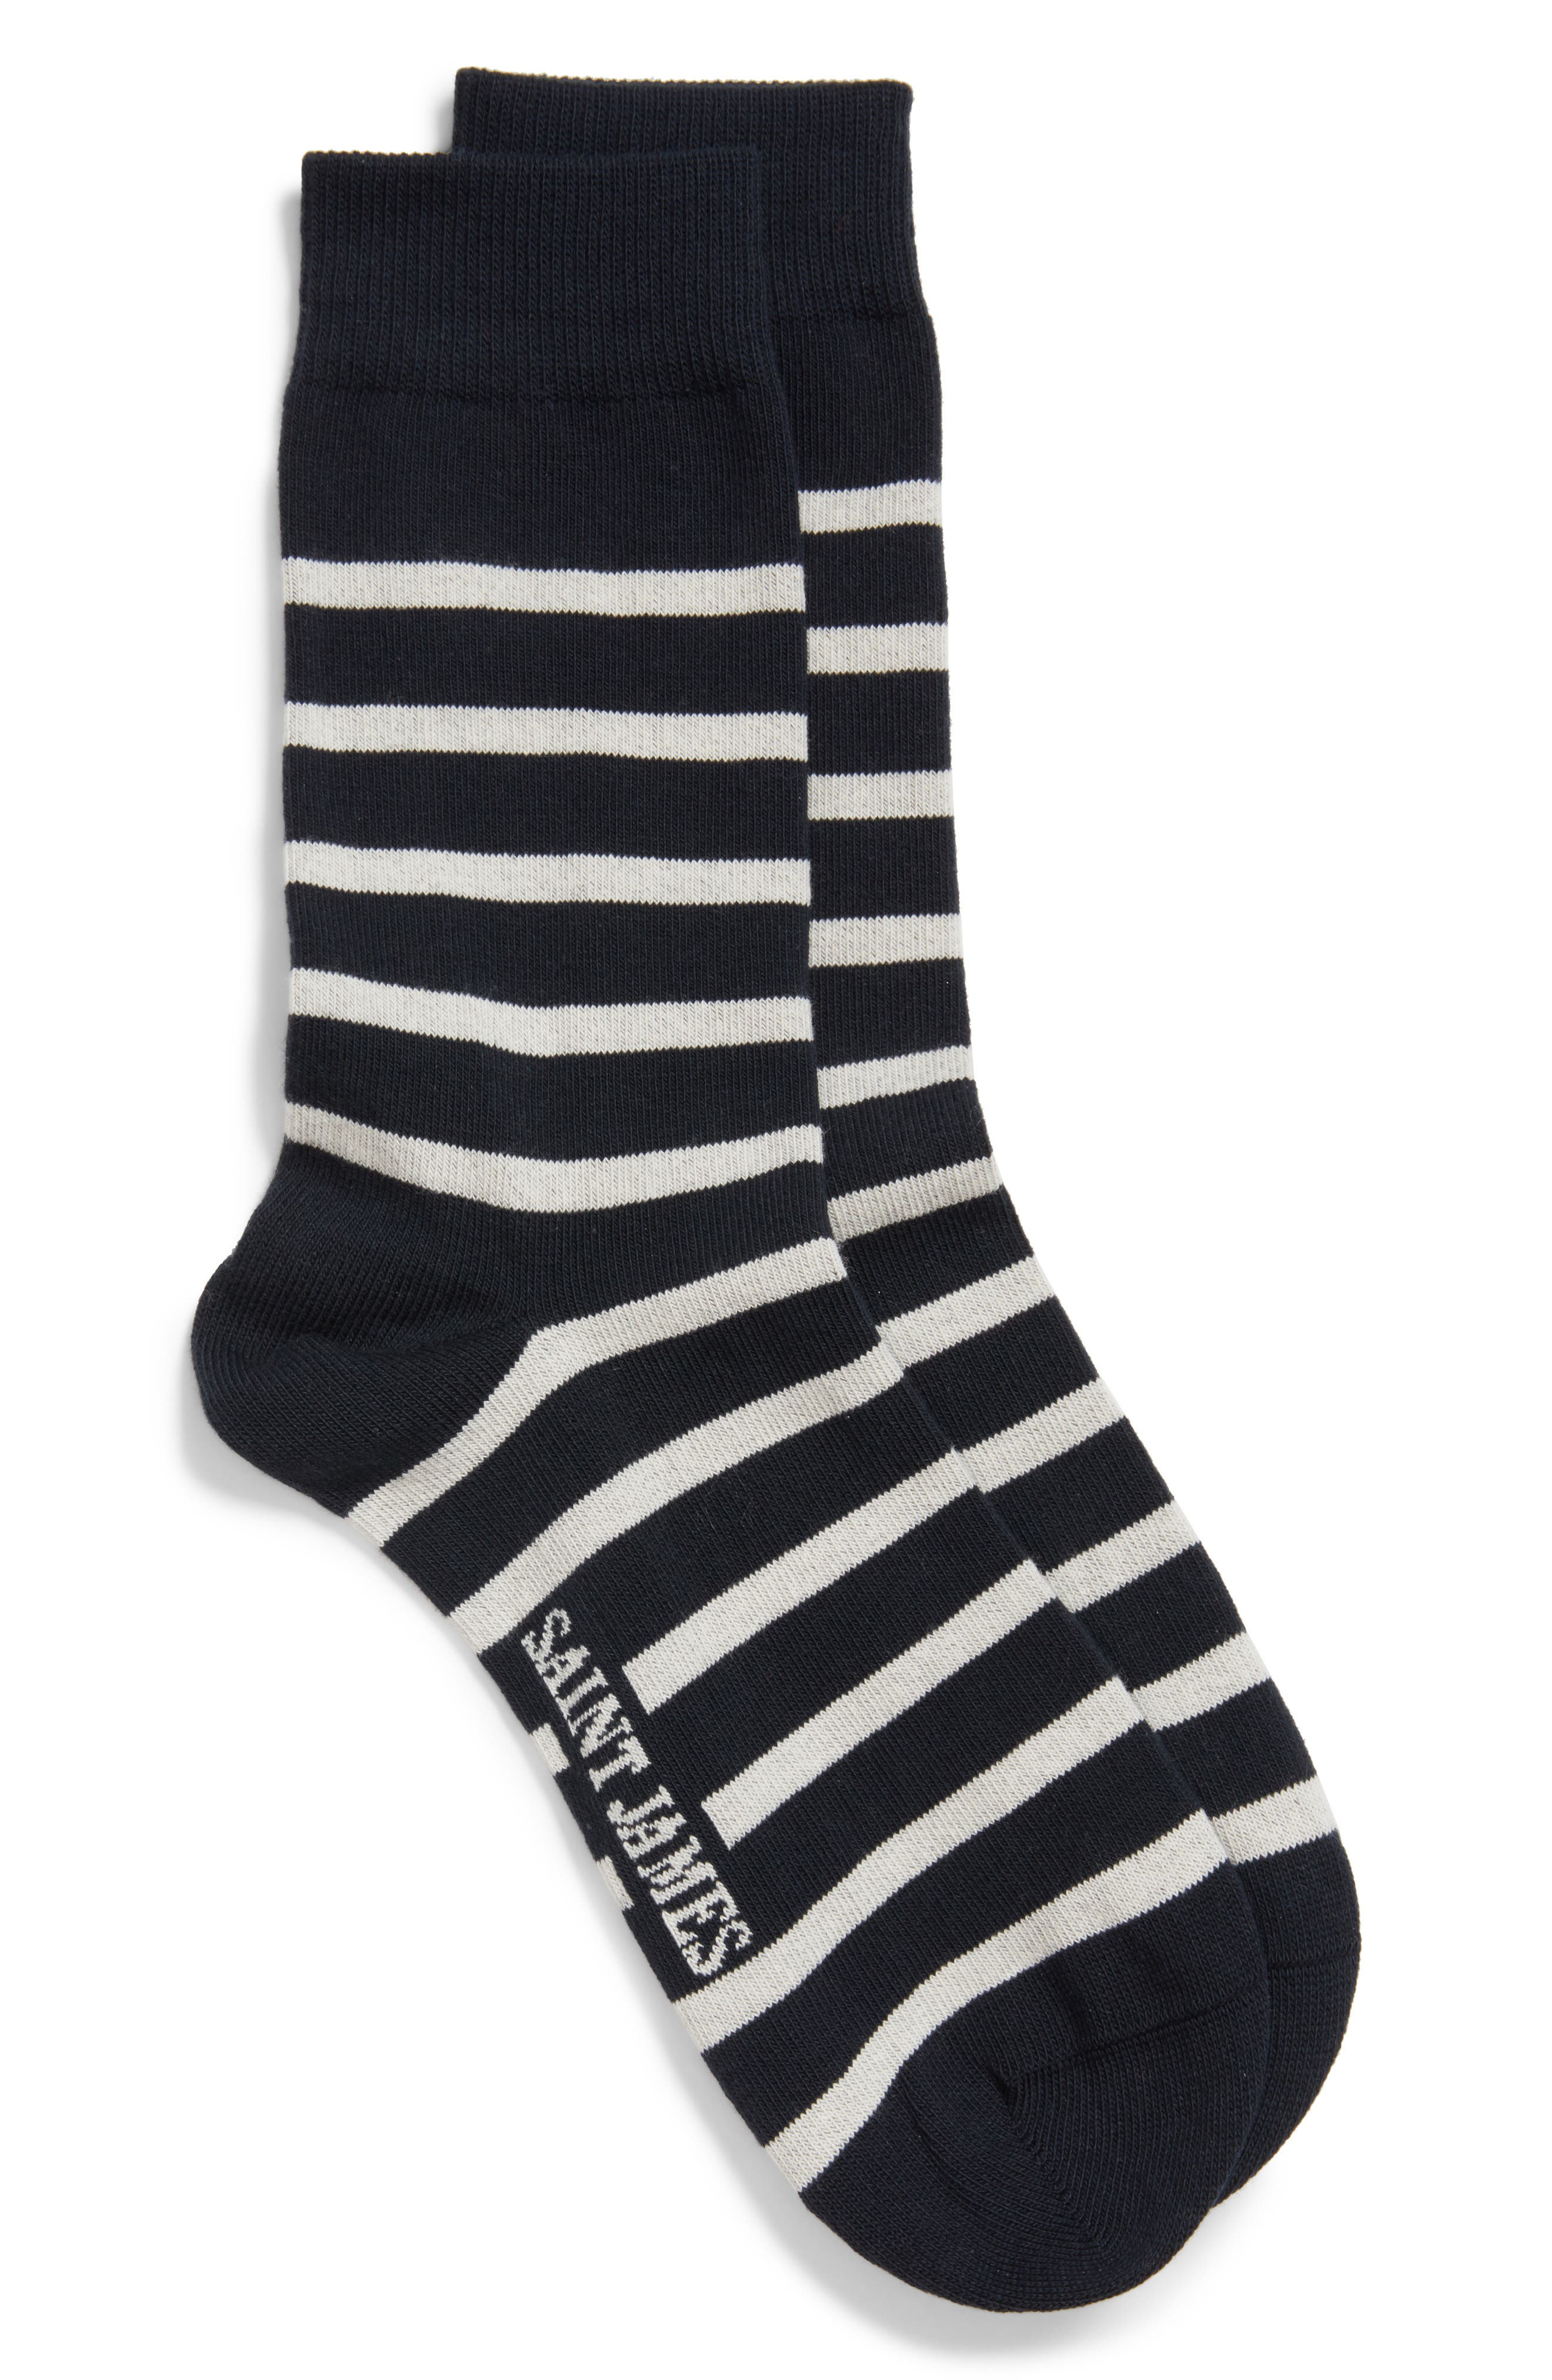 'Pieds Rayes A' Striped Socks,                             Main thumbnail 1, color,                             Navy/ White